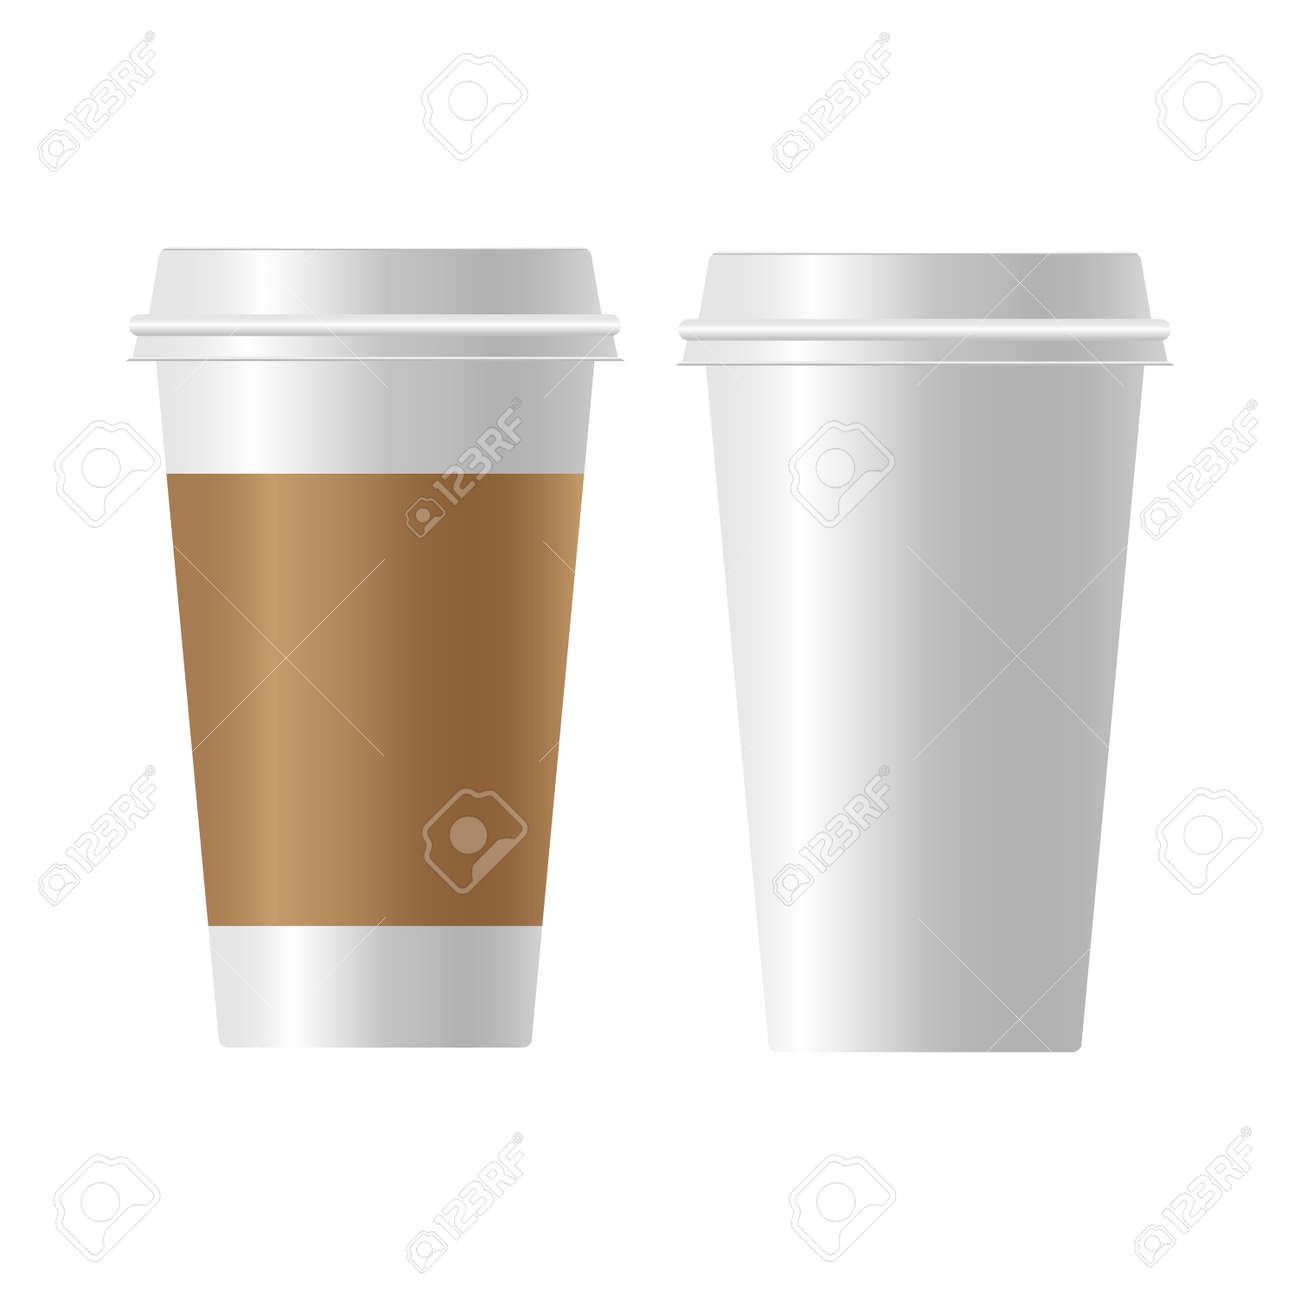 coffee cup paper Realistic - 149012566